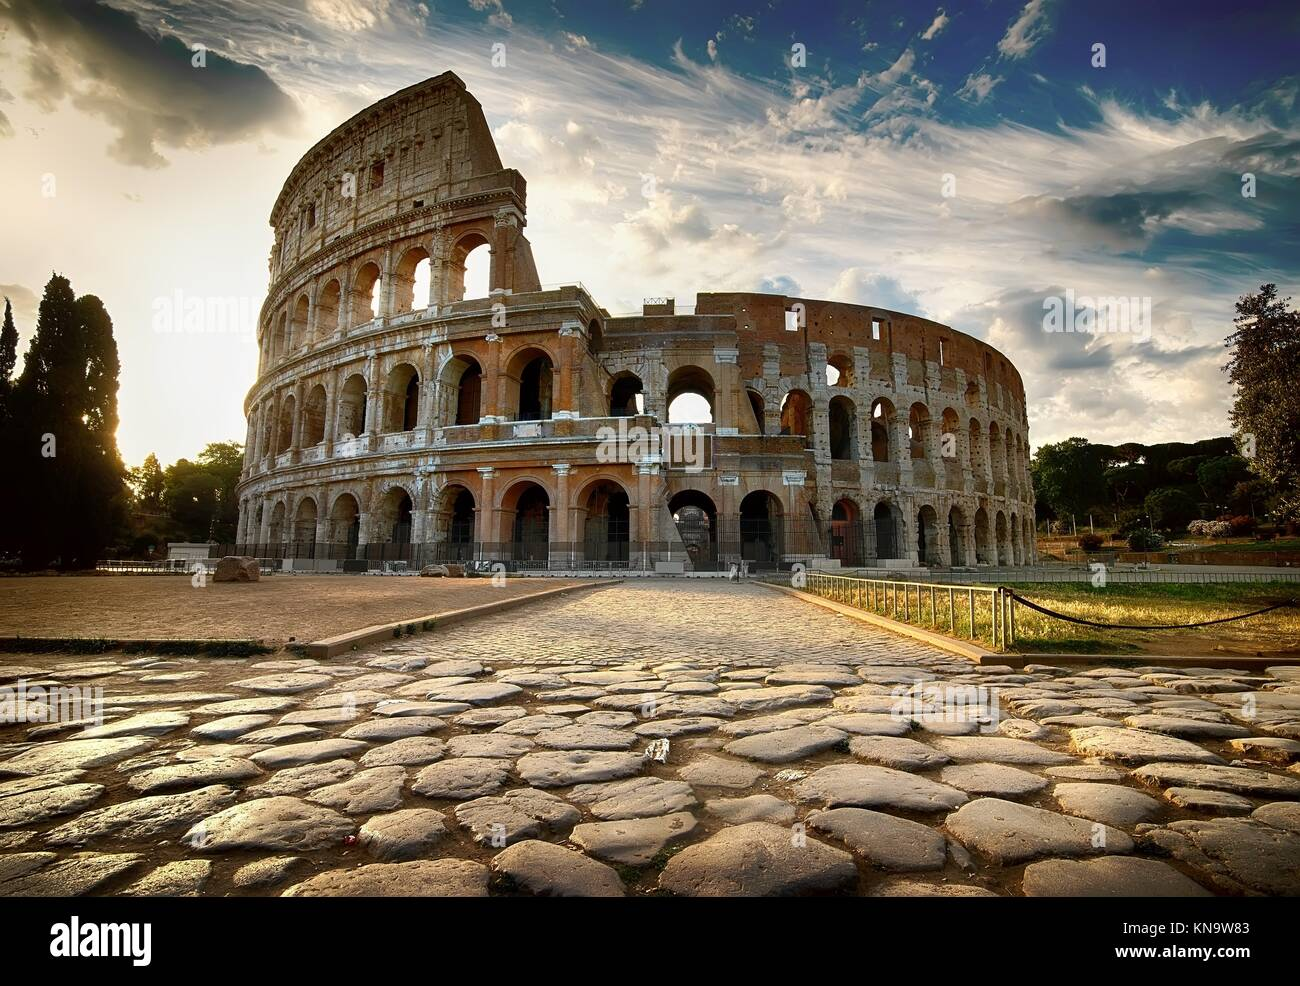 Cloudy dawn over roman Colosseum in Italy. - Stock Image